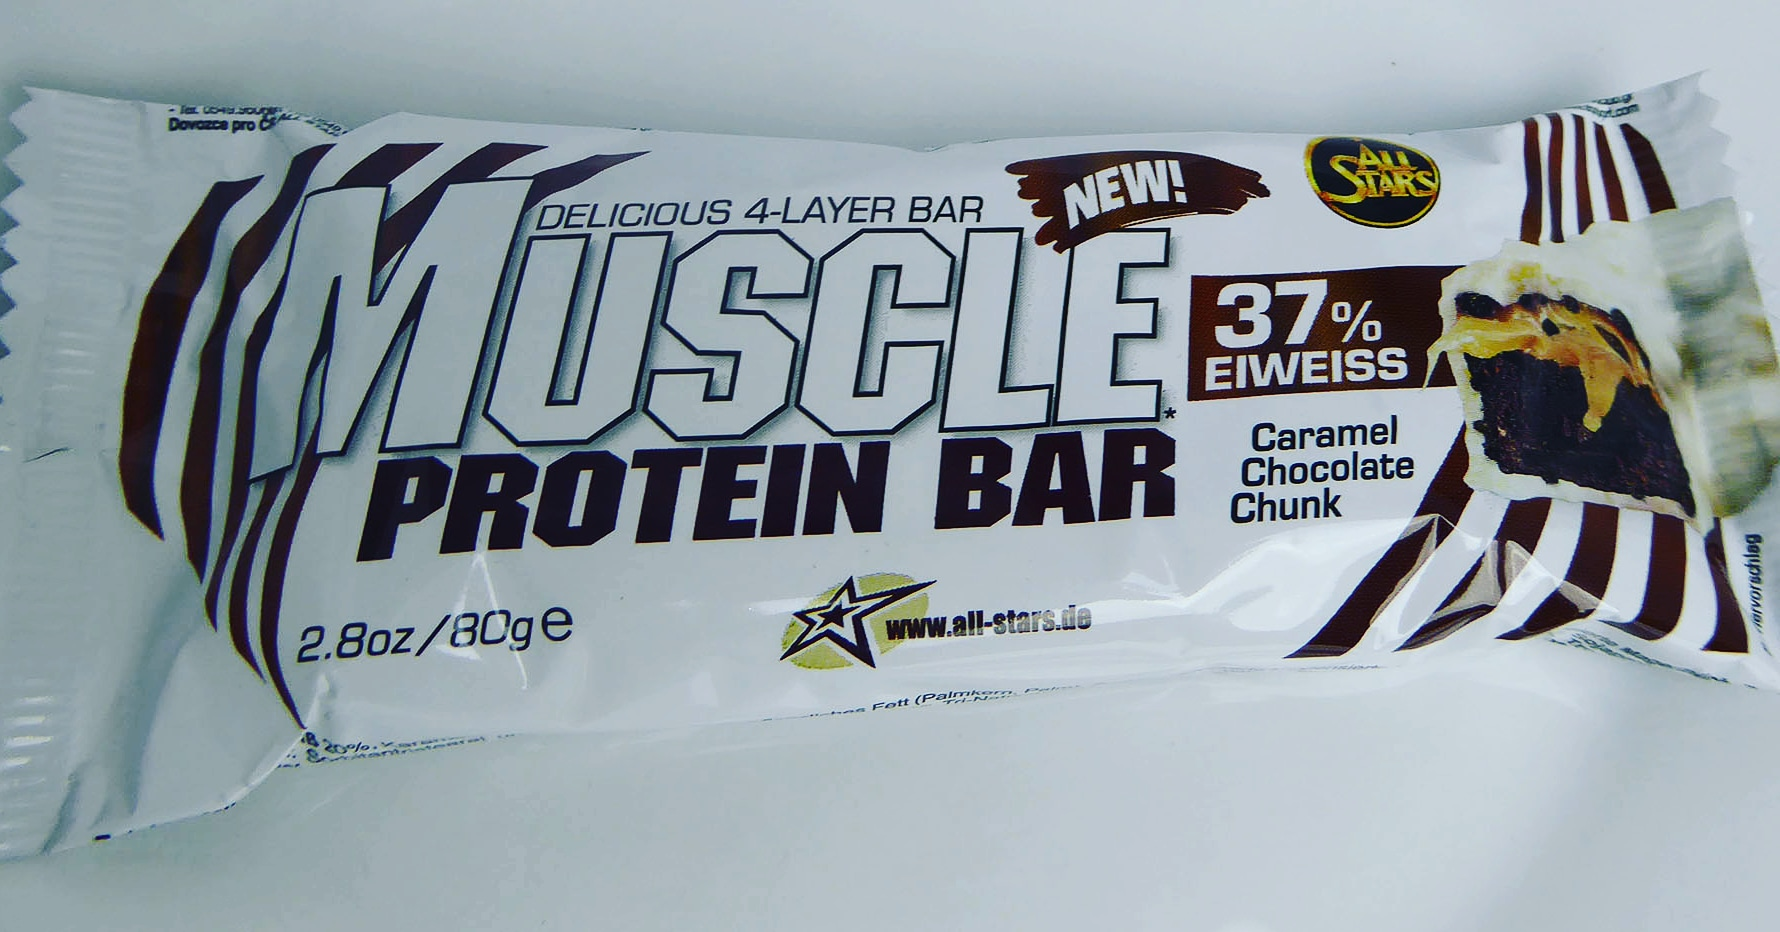 All Stars Muscle Protein Bar Caramel Chocolate Chunk